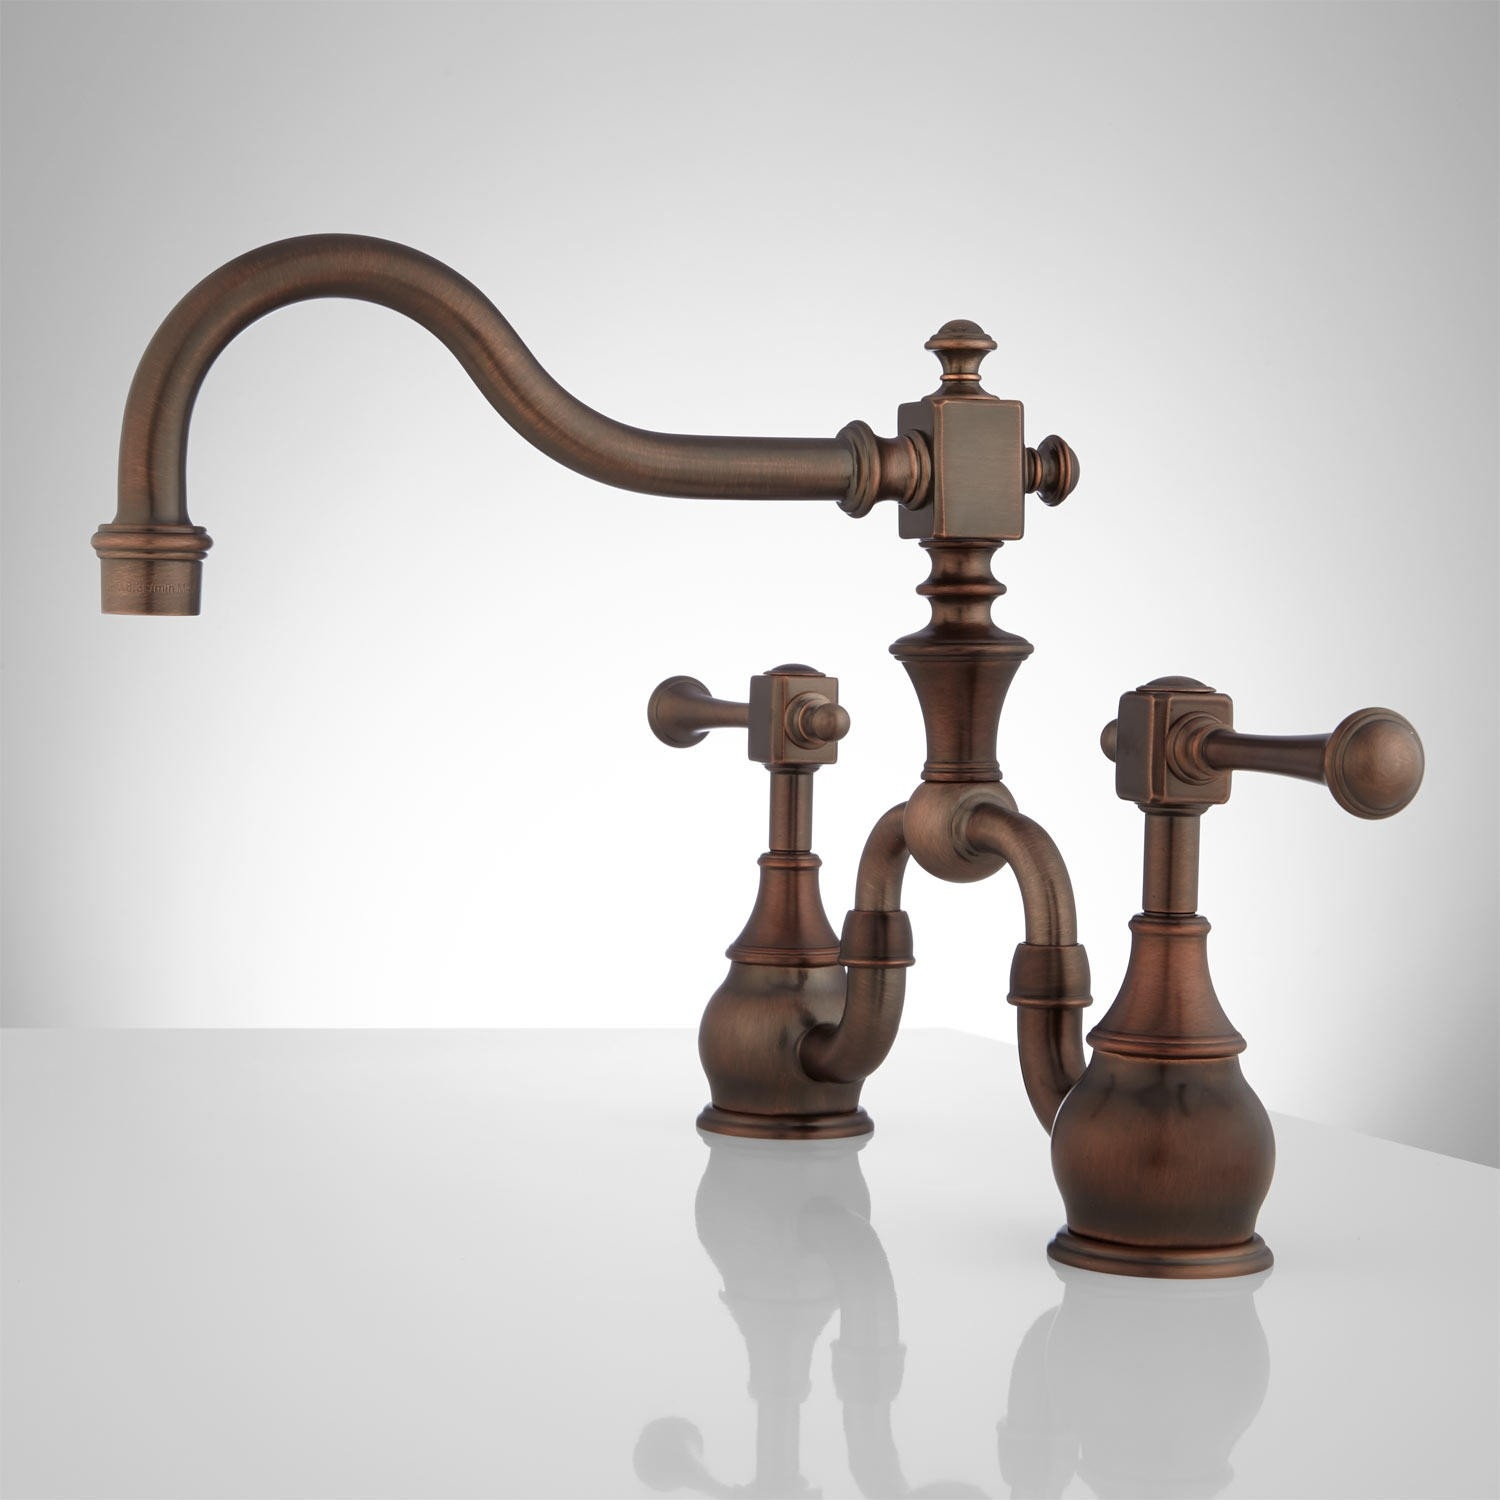 old fashioned looking kitchen faucets old fashioned looking kitchen faucets vintage bridge kitchen faucet lever handles kitchen 1500 x 1500